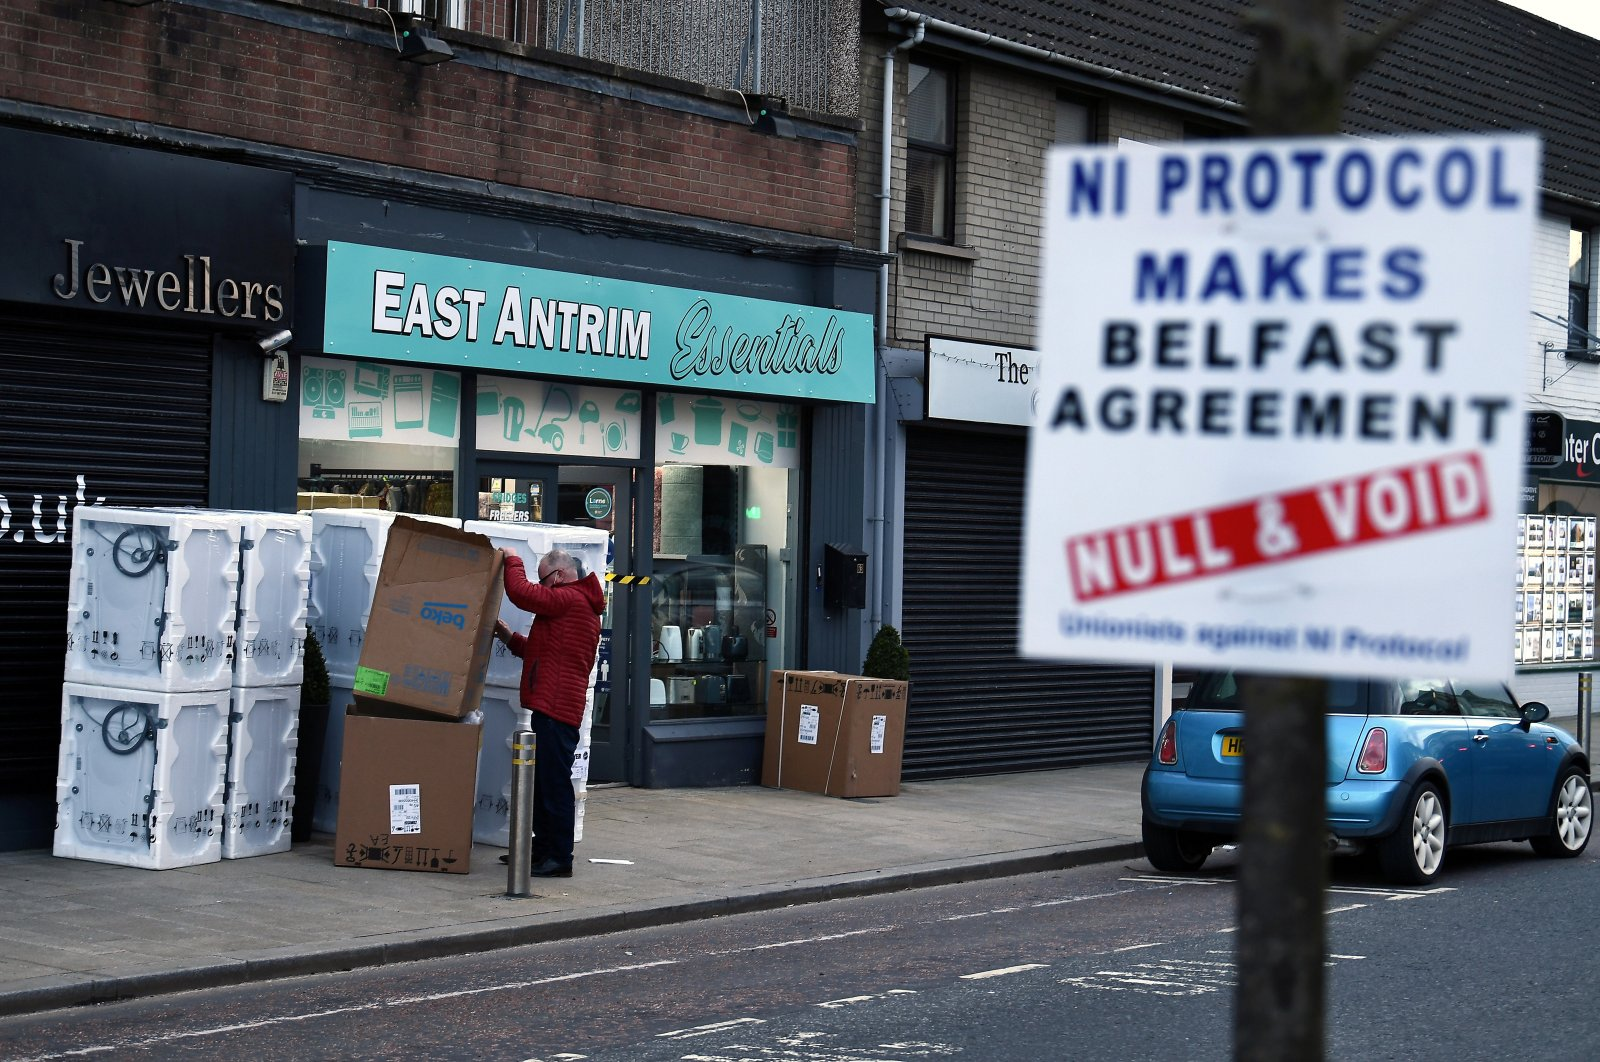 A man sorts through a delivery of washing machines, while a sign is seen across the road with a message against the Brexit border checks in relation to the Northern Ireland protocol, Larne, Northern Ireland, Feb. 12, 2021. (REUTERS)